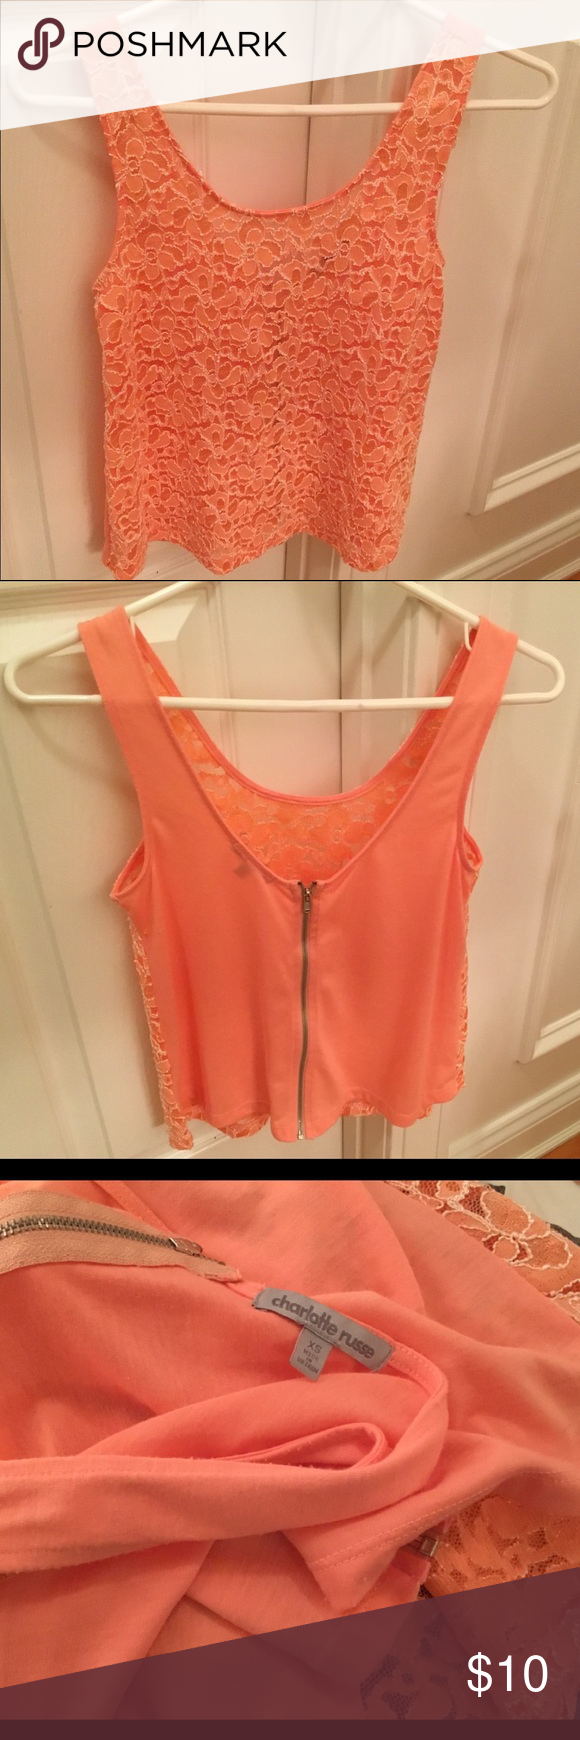 a9497115a310c9 Charlotte Russe Lace Tank Top Charlotte Russe Lace Tank Top Light Coral  orange color Size small Zip back detail Good Condition Charlotte Russe Tops  Tank ...